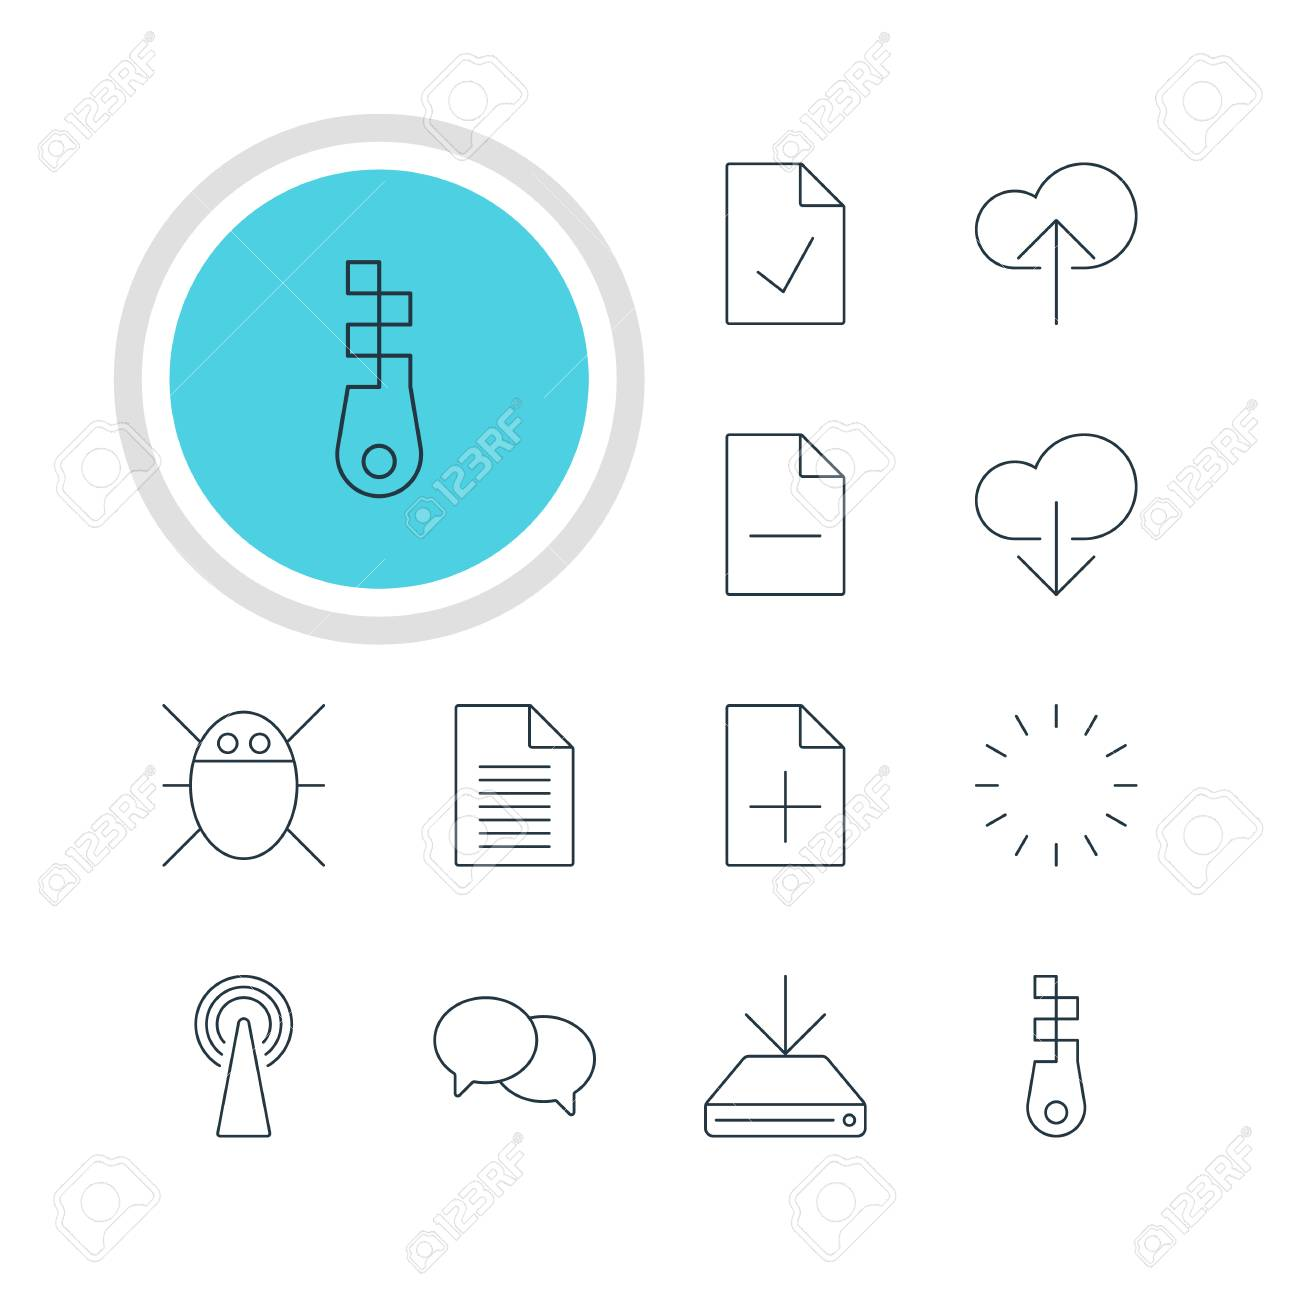 vector illustration of 12 web icons editable pack of cloud download